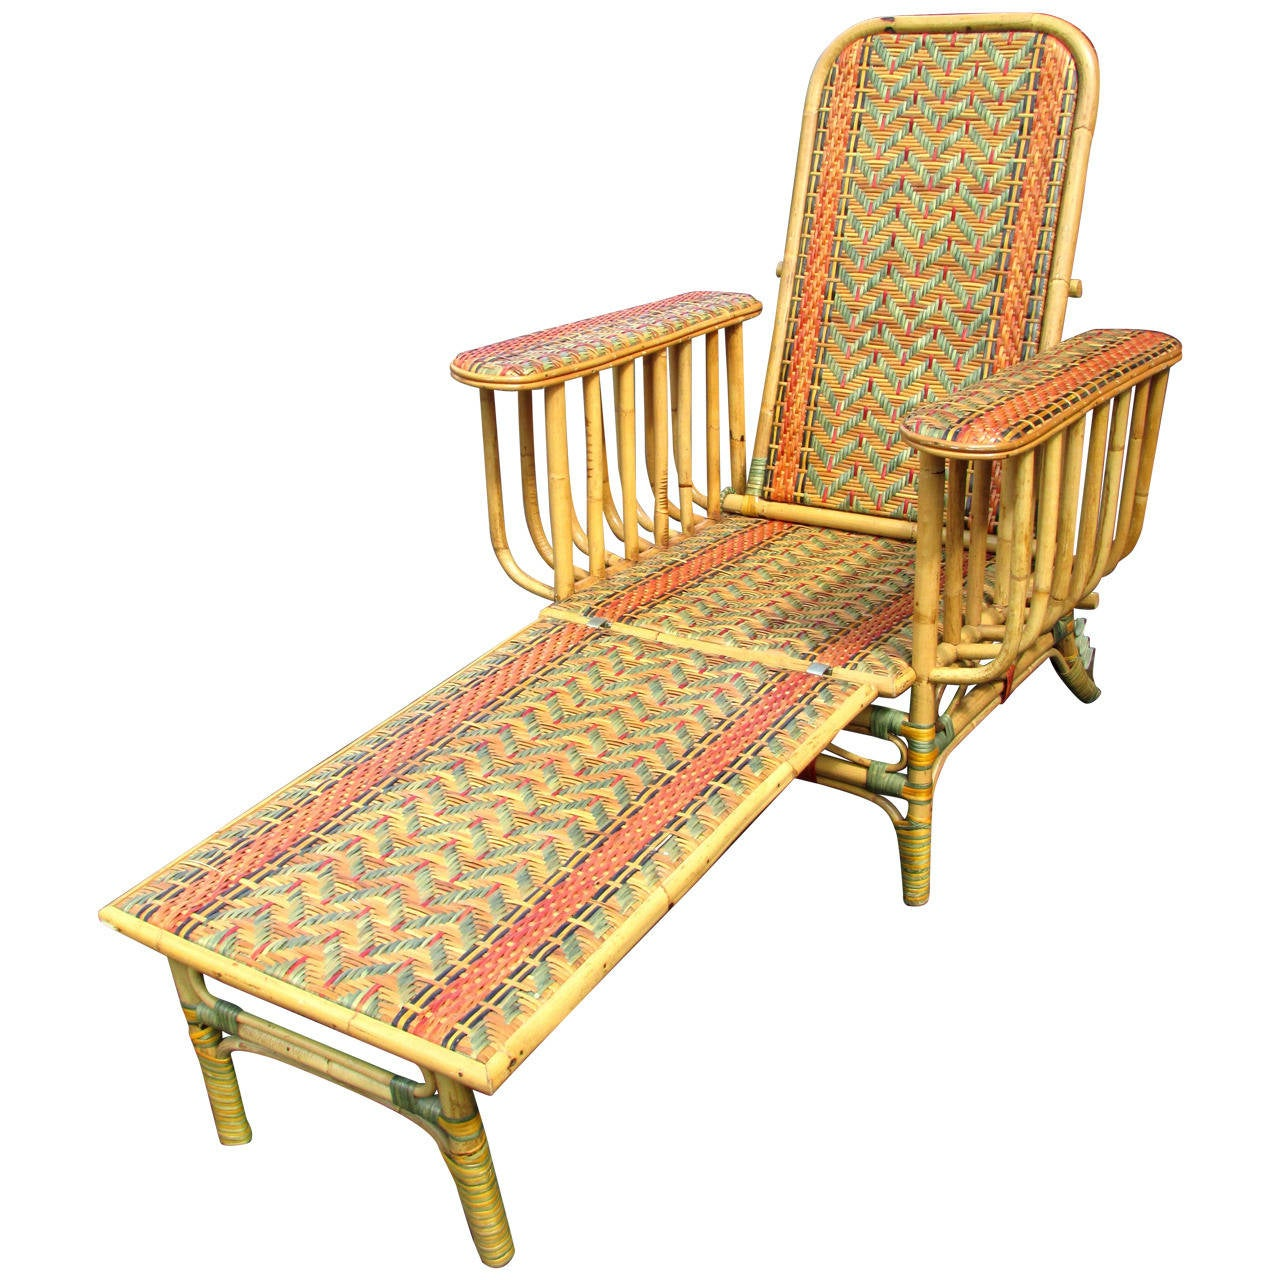 Art deco style wicker deck lounge chair at 1stdibs for Art deco style lounge